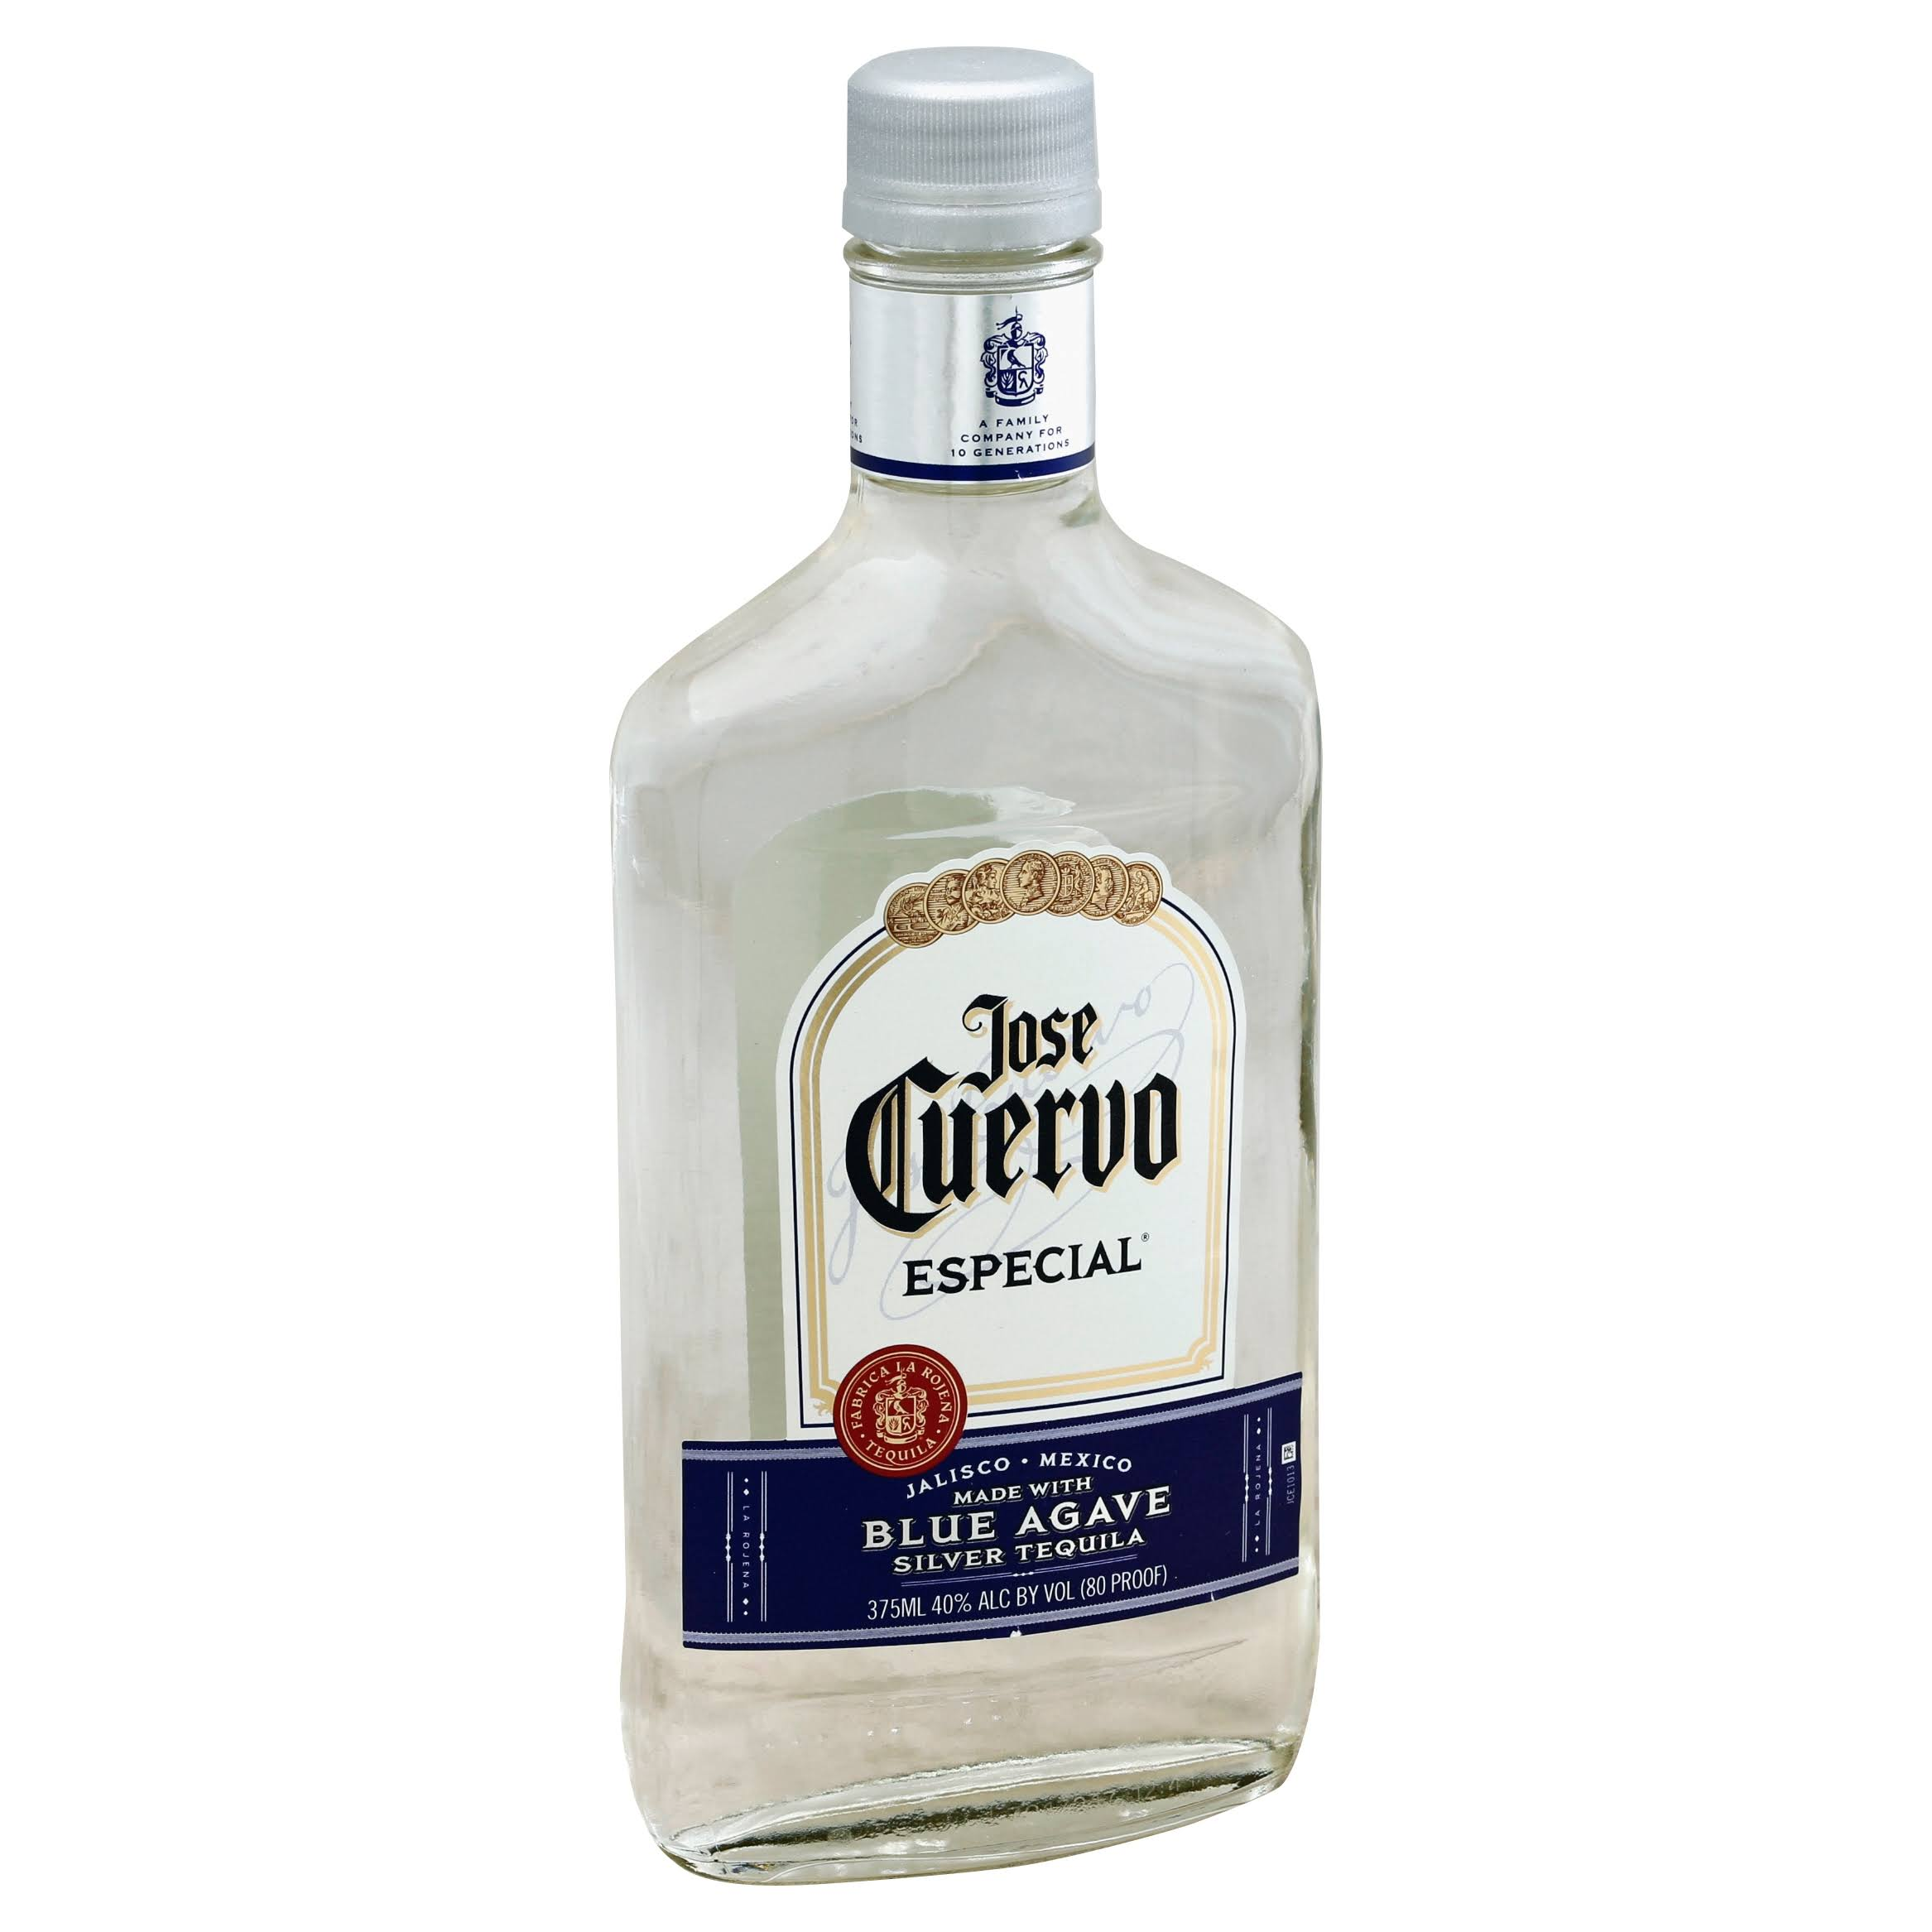 Jose Cuervo Especial Tequila, Silver, Blue Agave - 375 ml